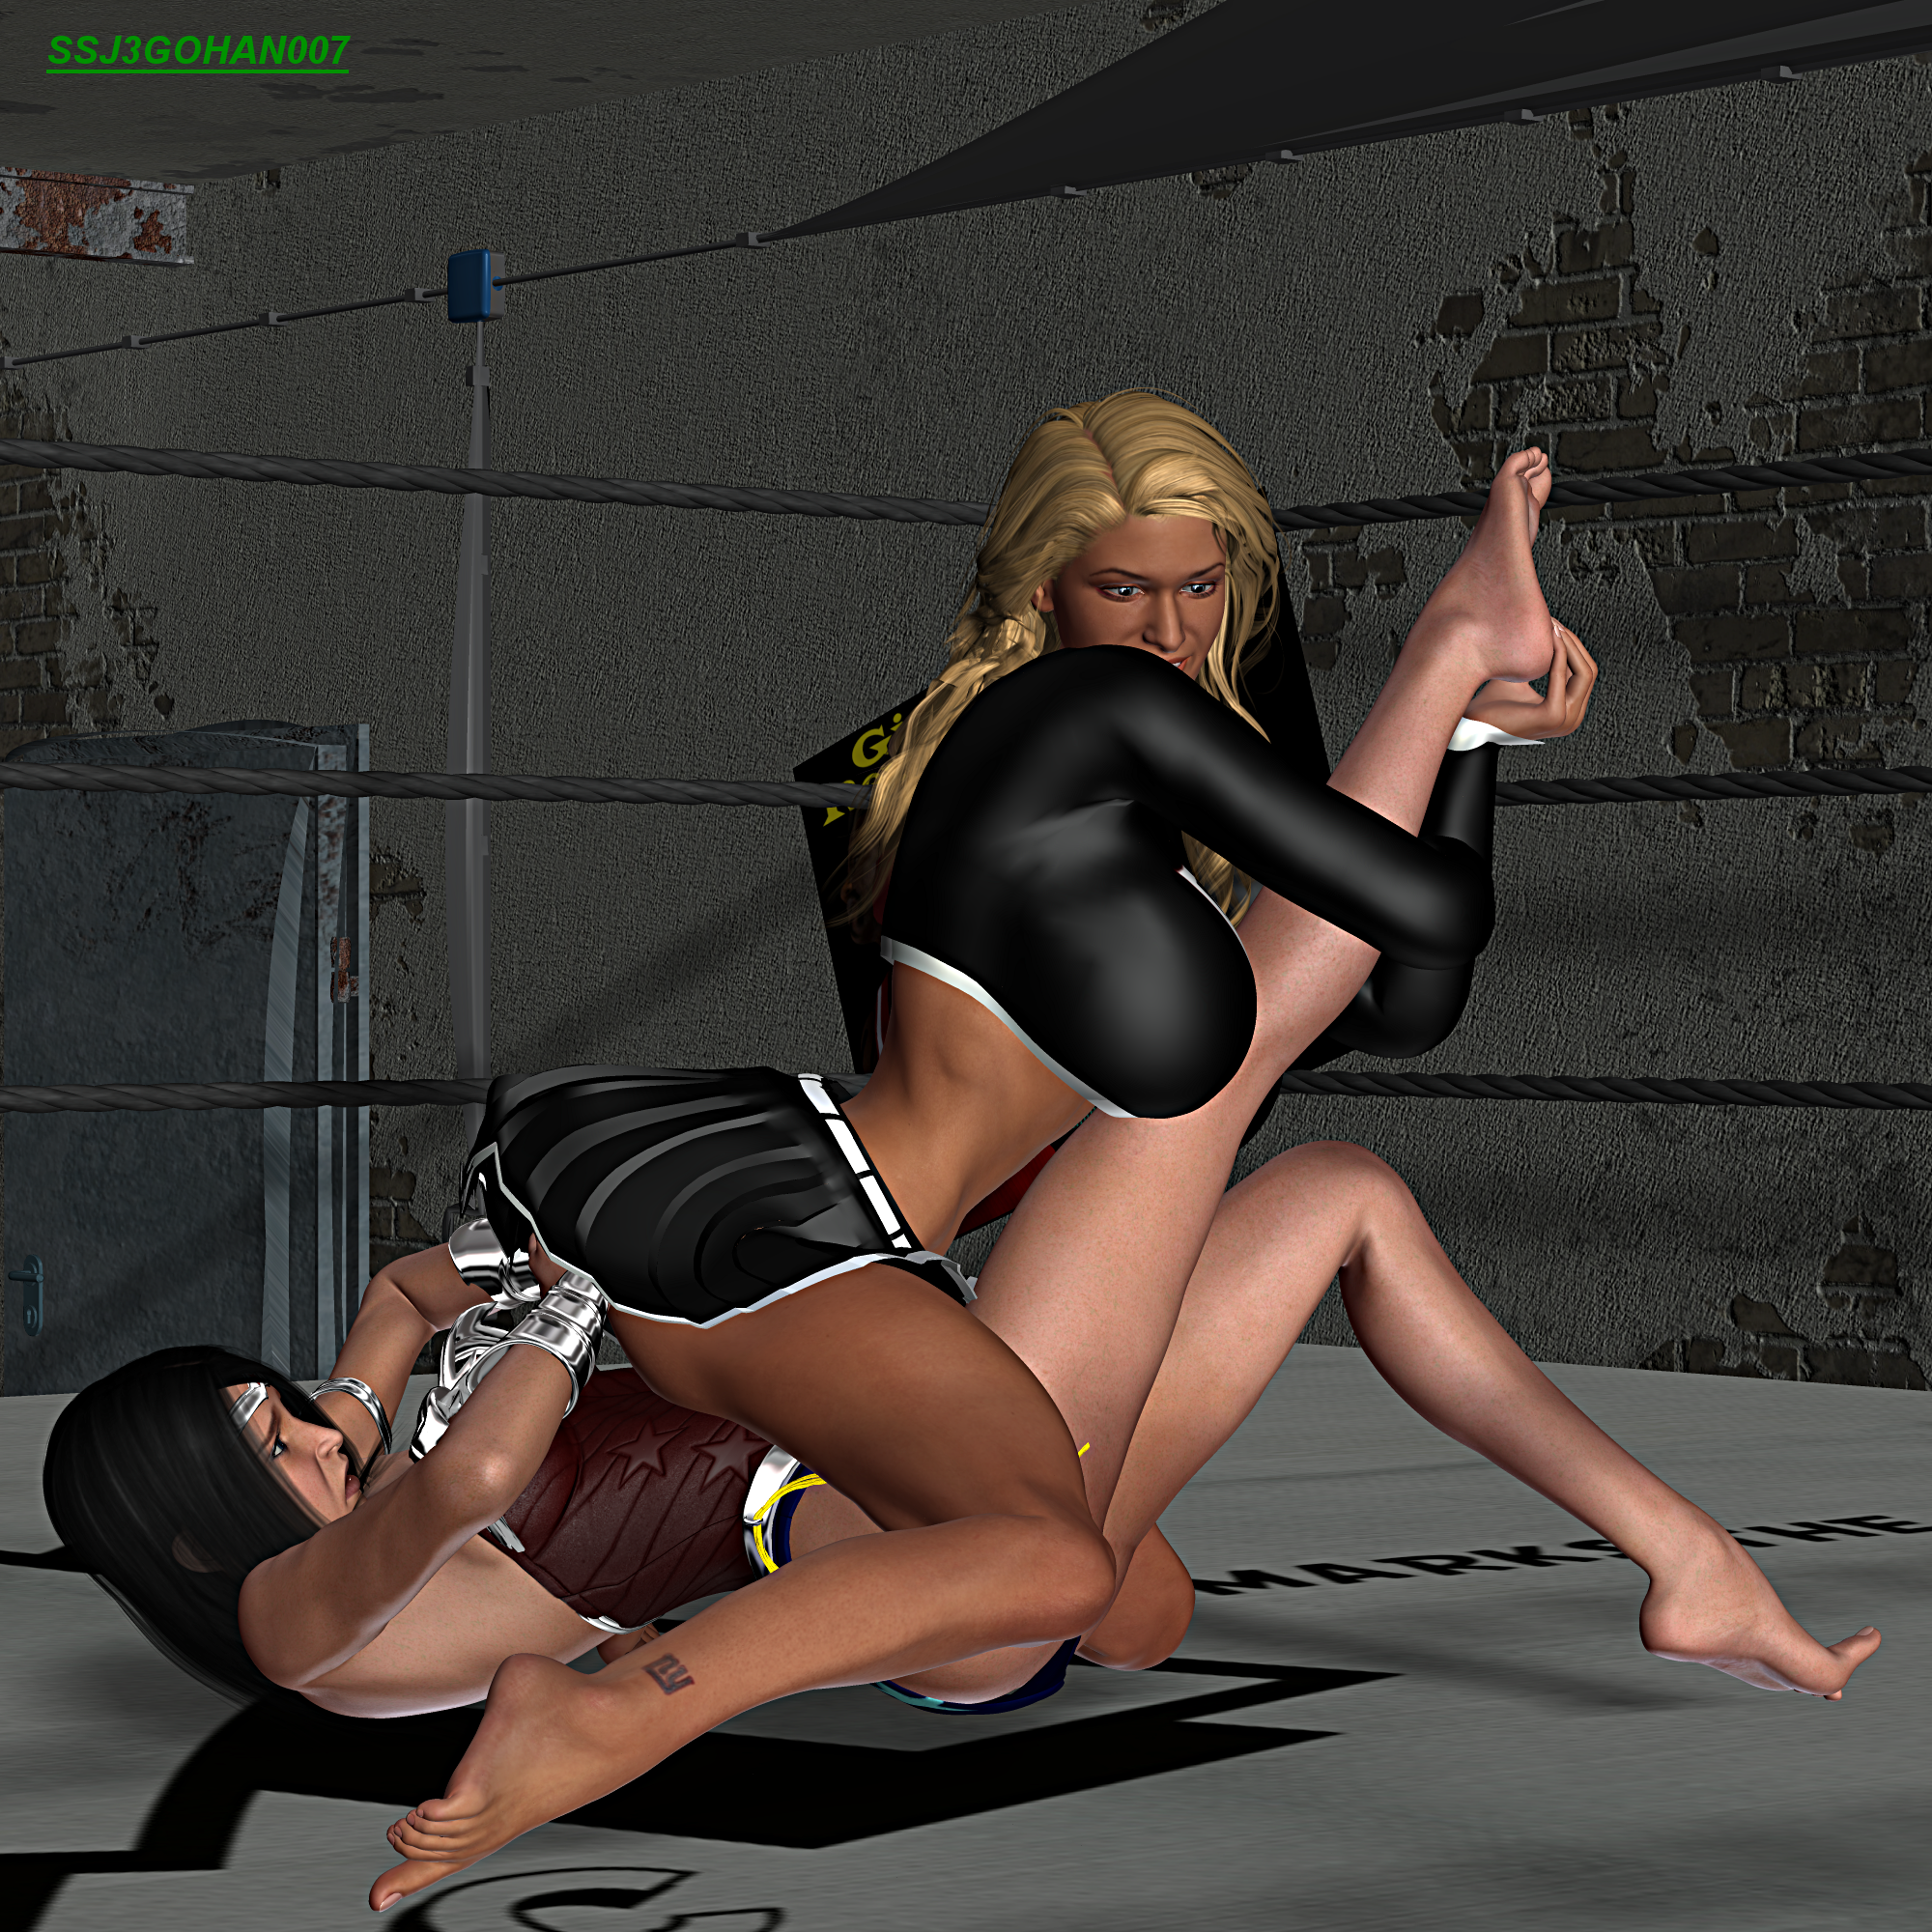 3d girl wrestling getting rough free videos hardcore pics